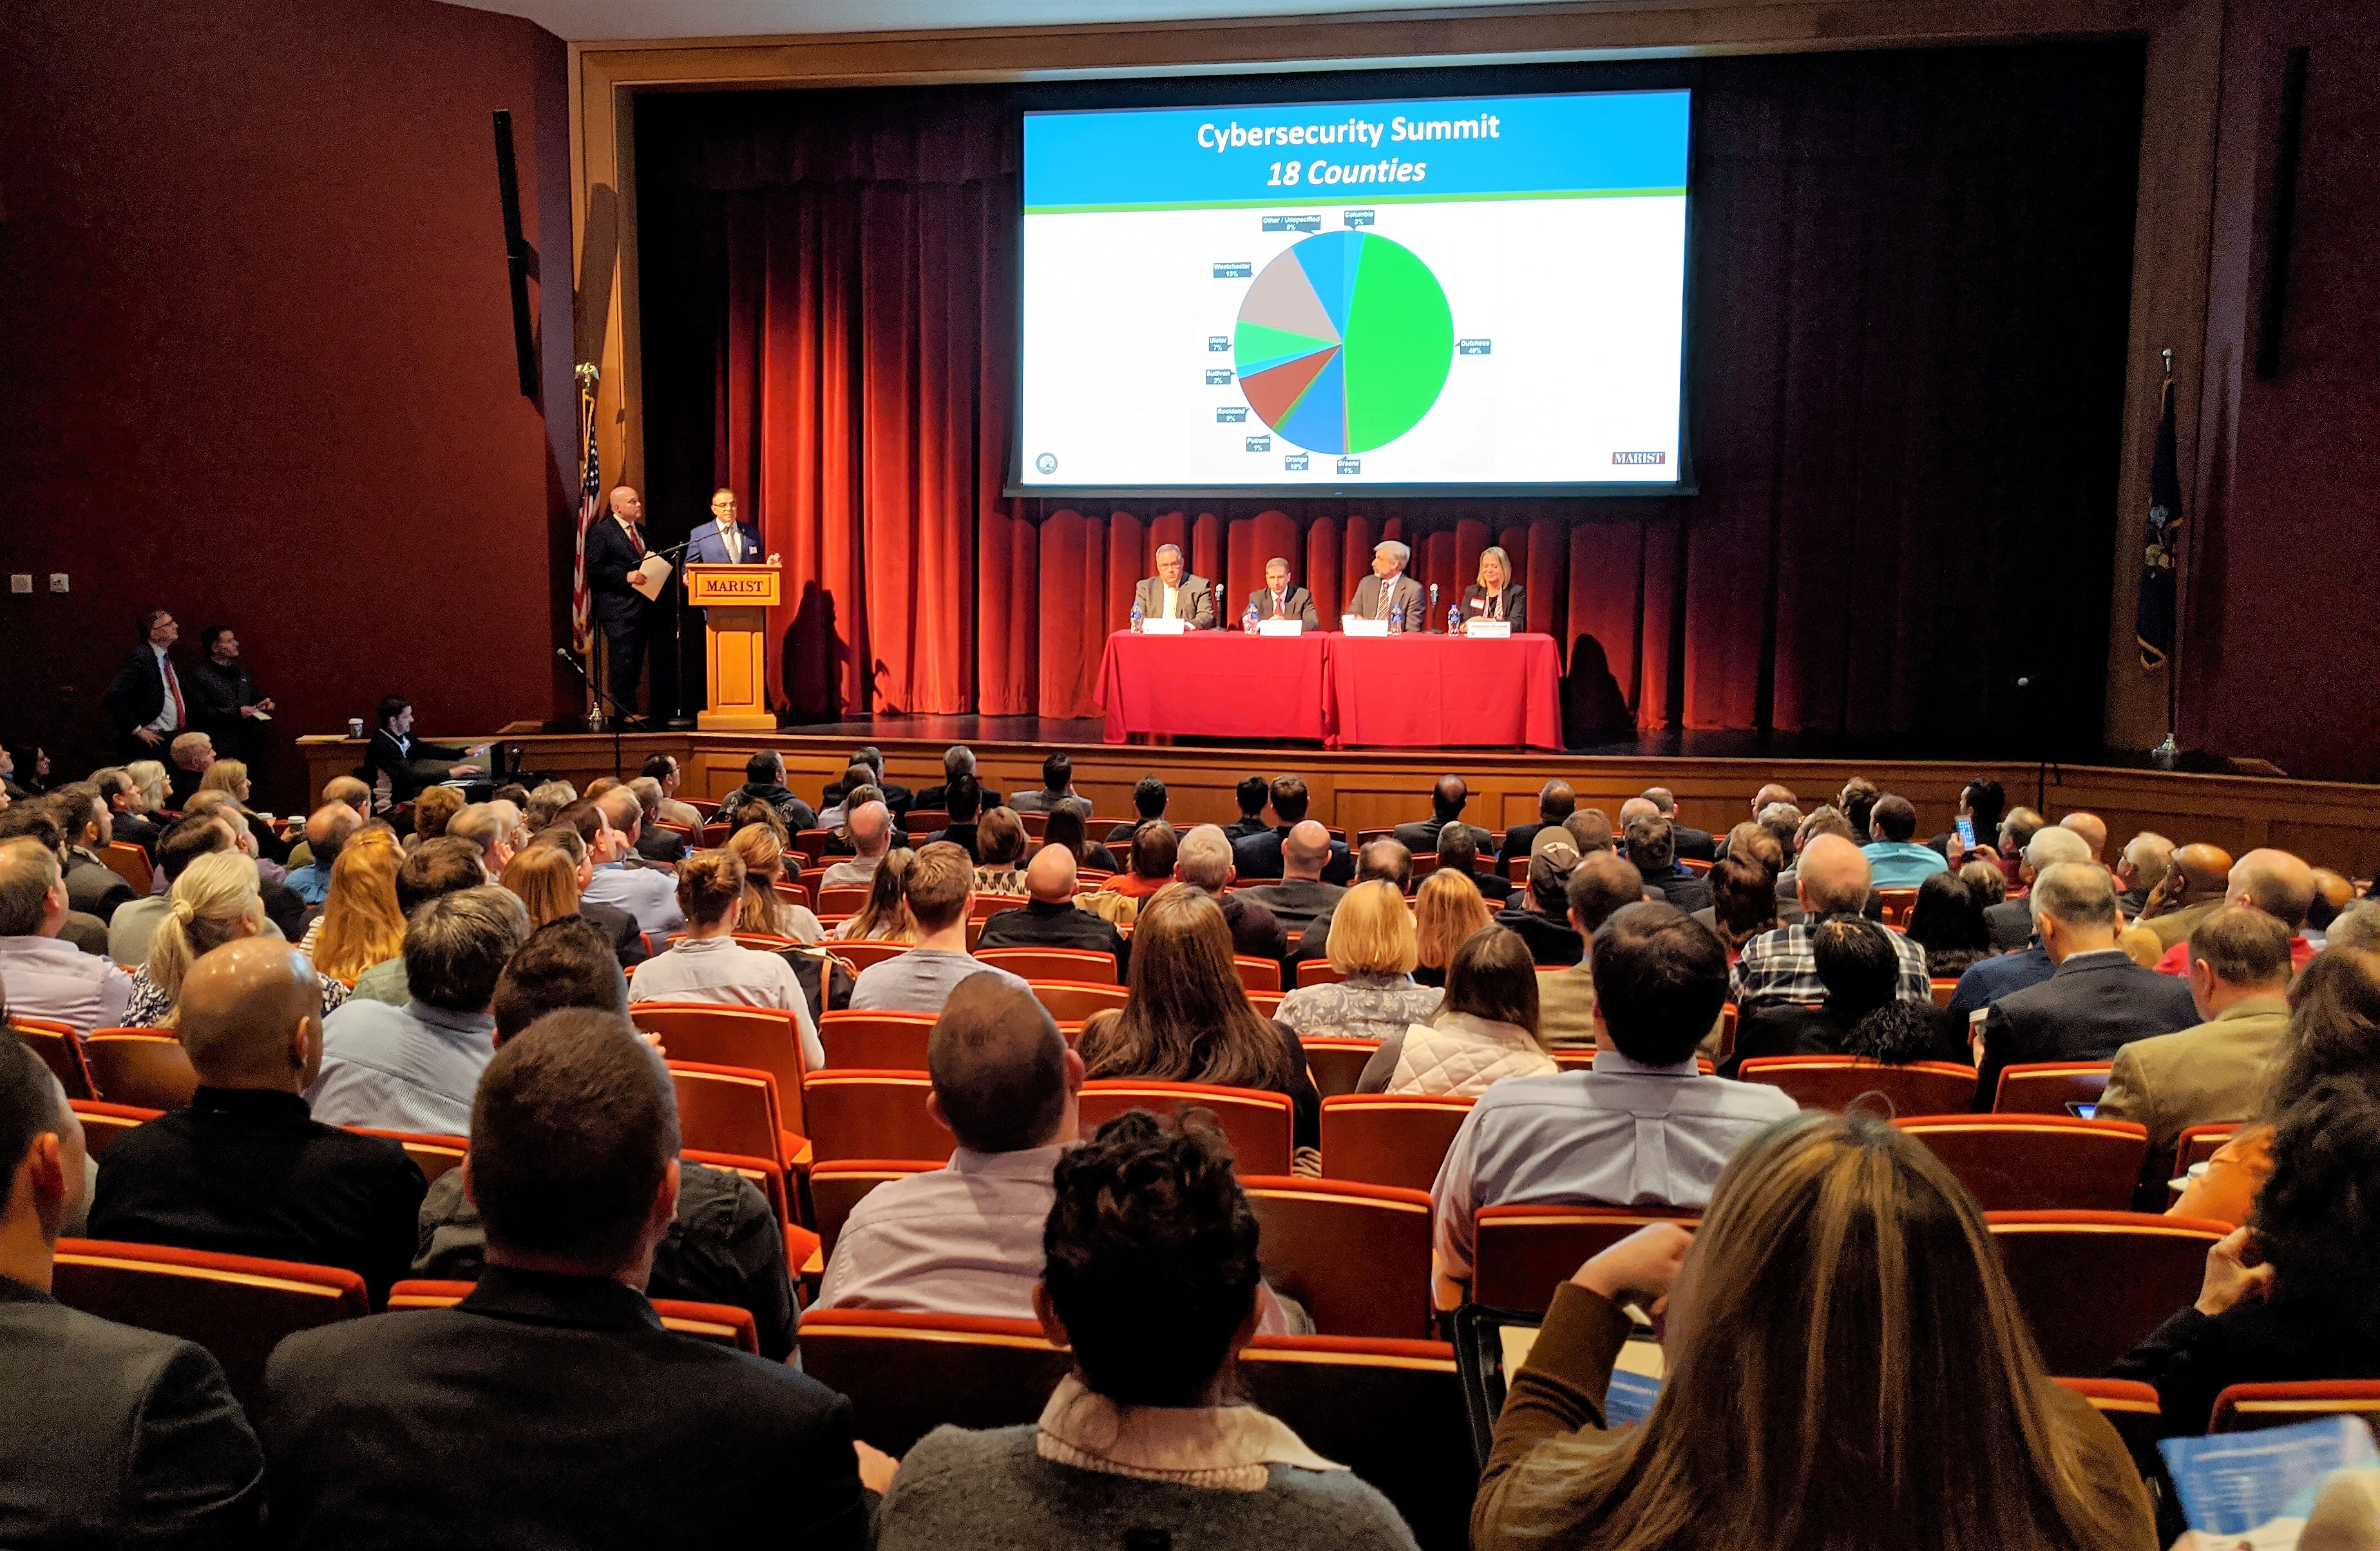 Nearly 300 attended the inaugural Hudson Valley Cyber Security Summit at Marist College.